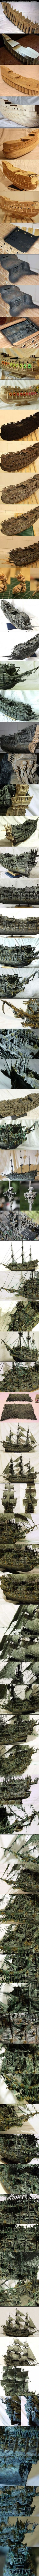 A terrific series of photographs shows the construction of the Flying Dutchman.